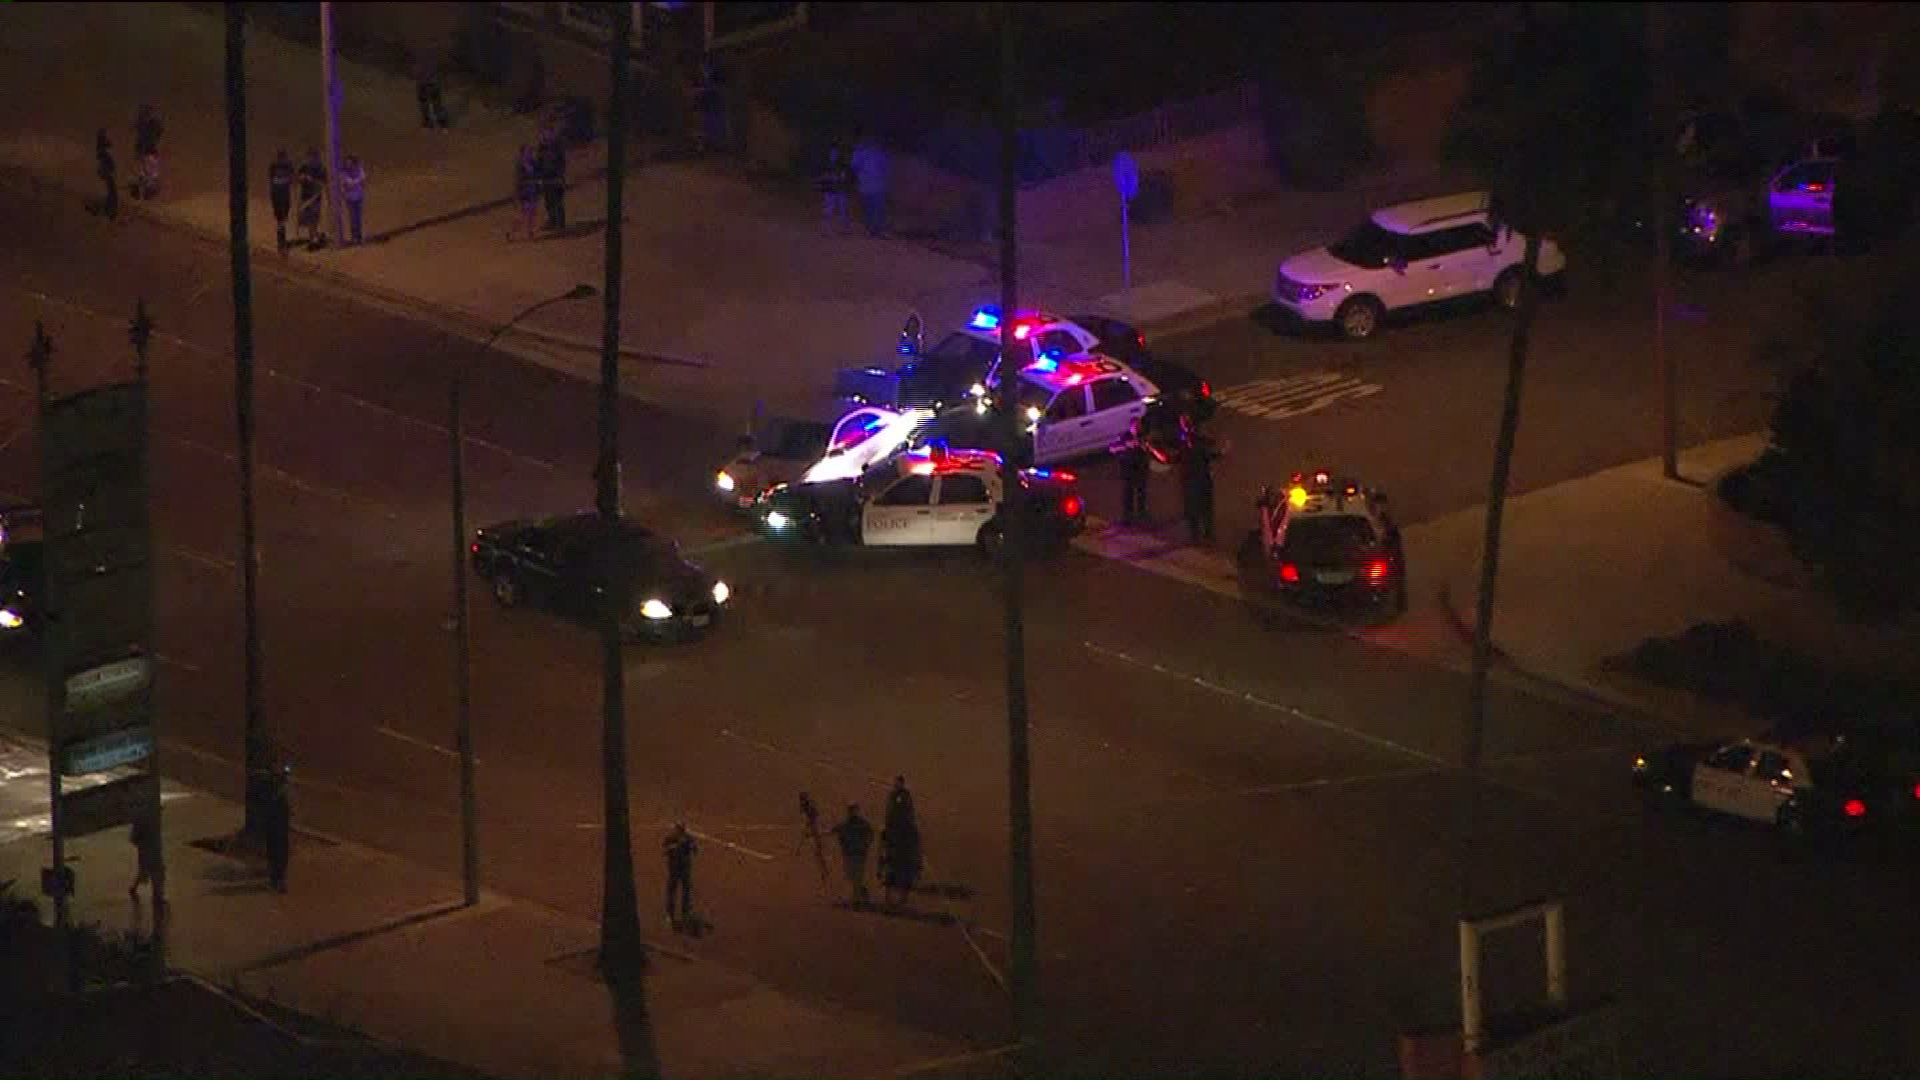 An officer involved shooting was under investigation in Anaheim on Aug. 24, 2016. (Credit: KTLA)